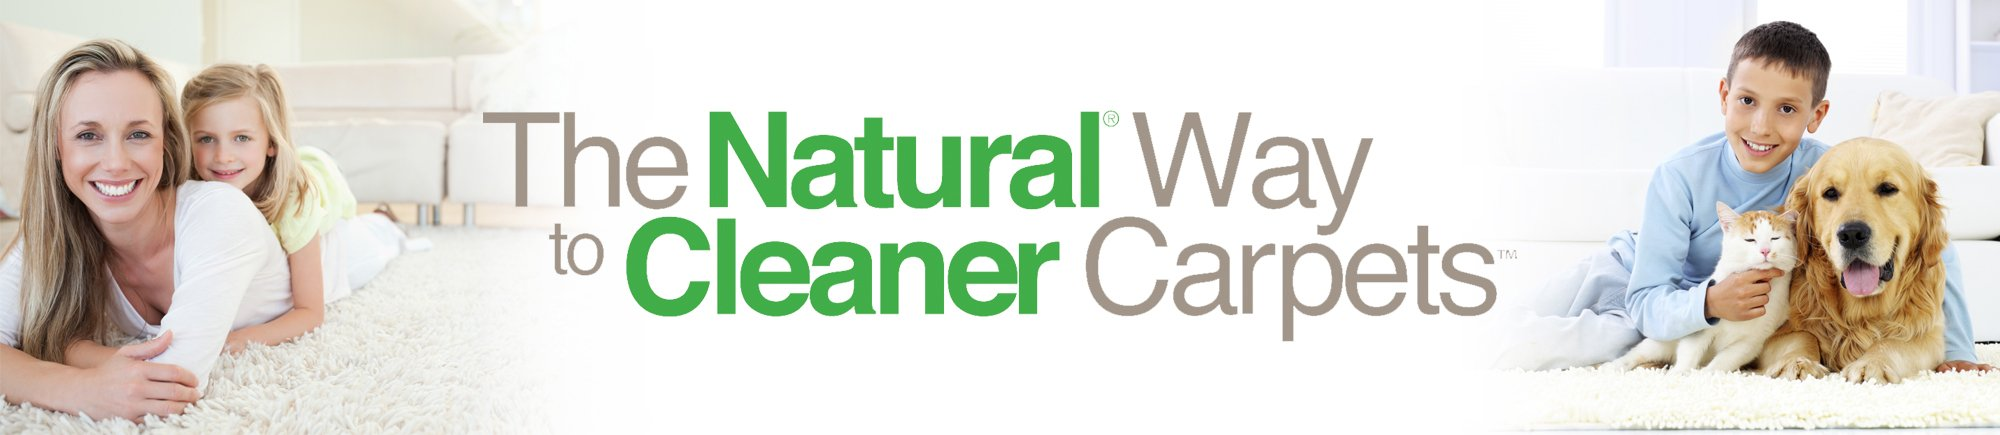 natural cleaning carpets family image